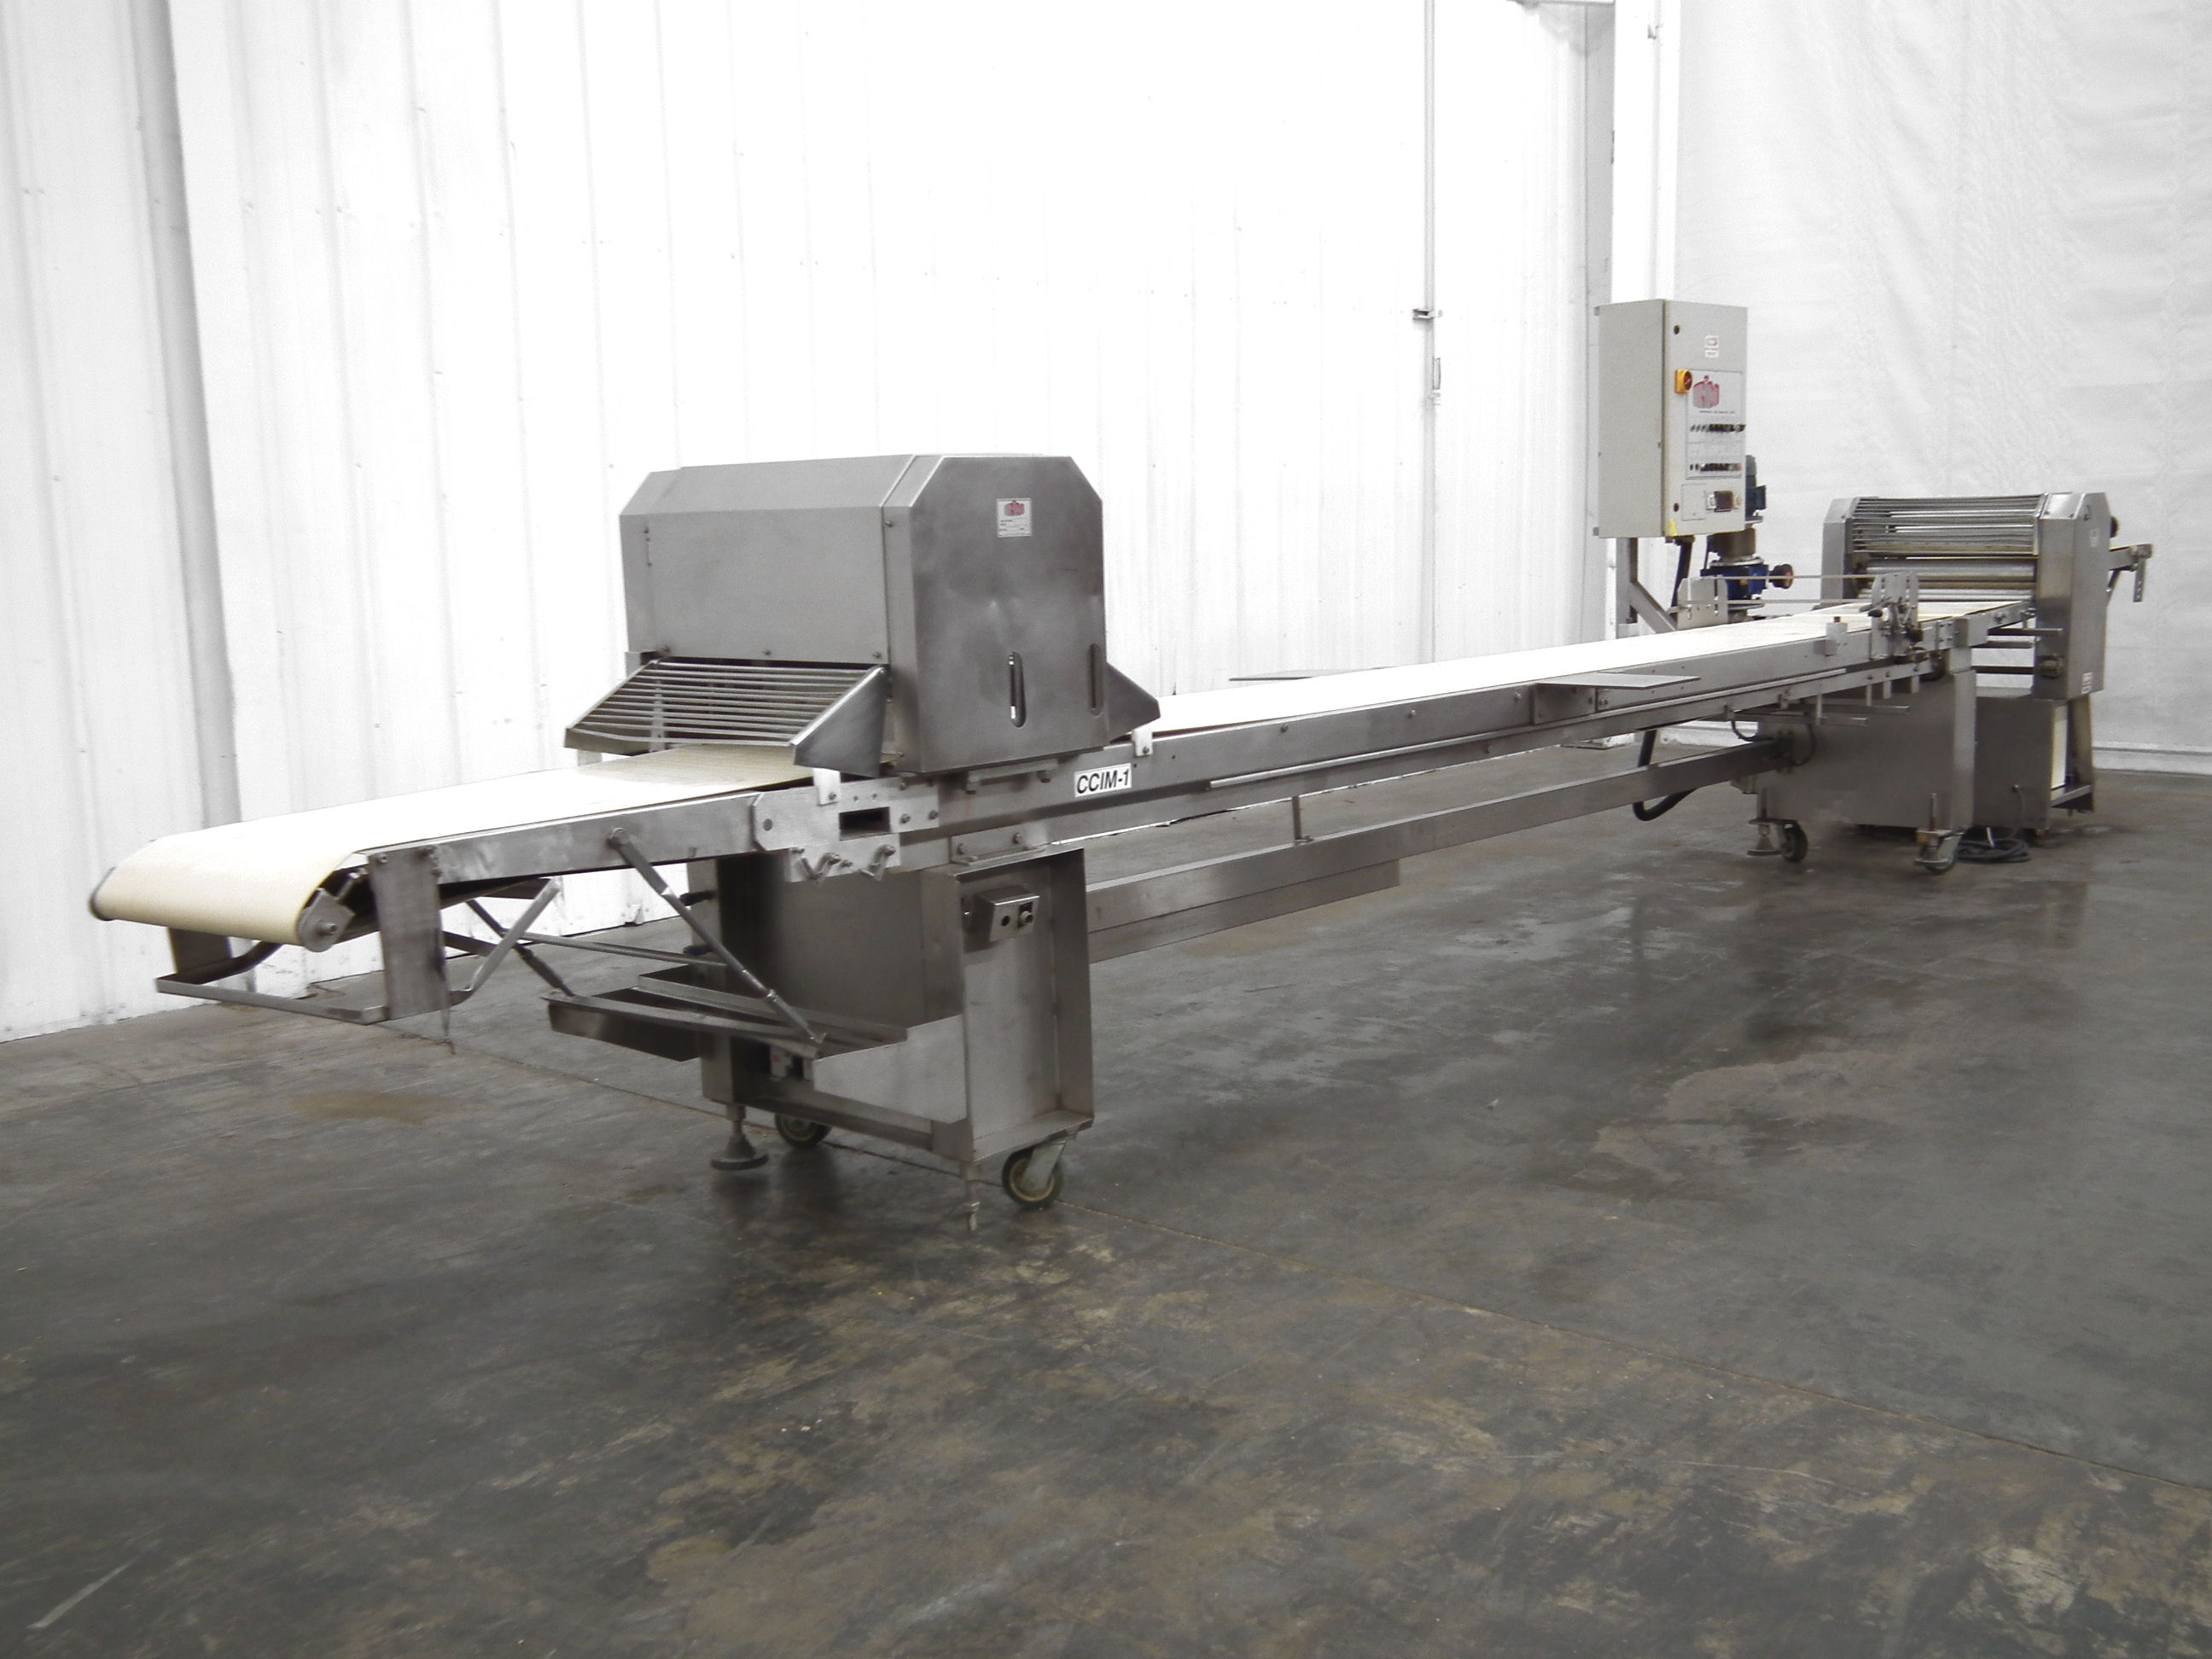 CIM Maxima 165 Dough Sheeter Guillotine 28 In Wide A7948 - Image 4 of 11